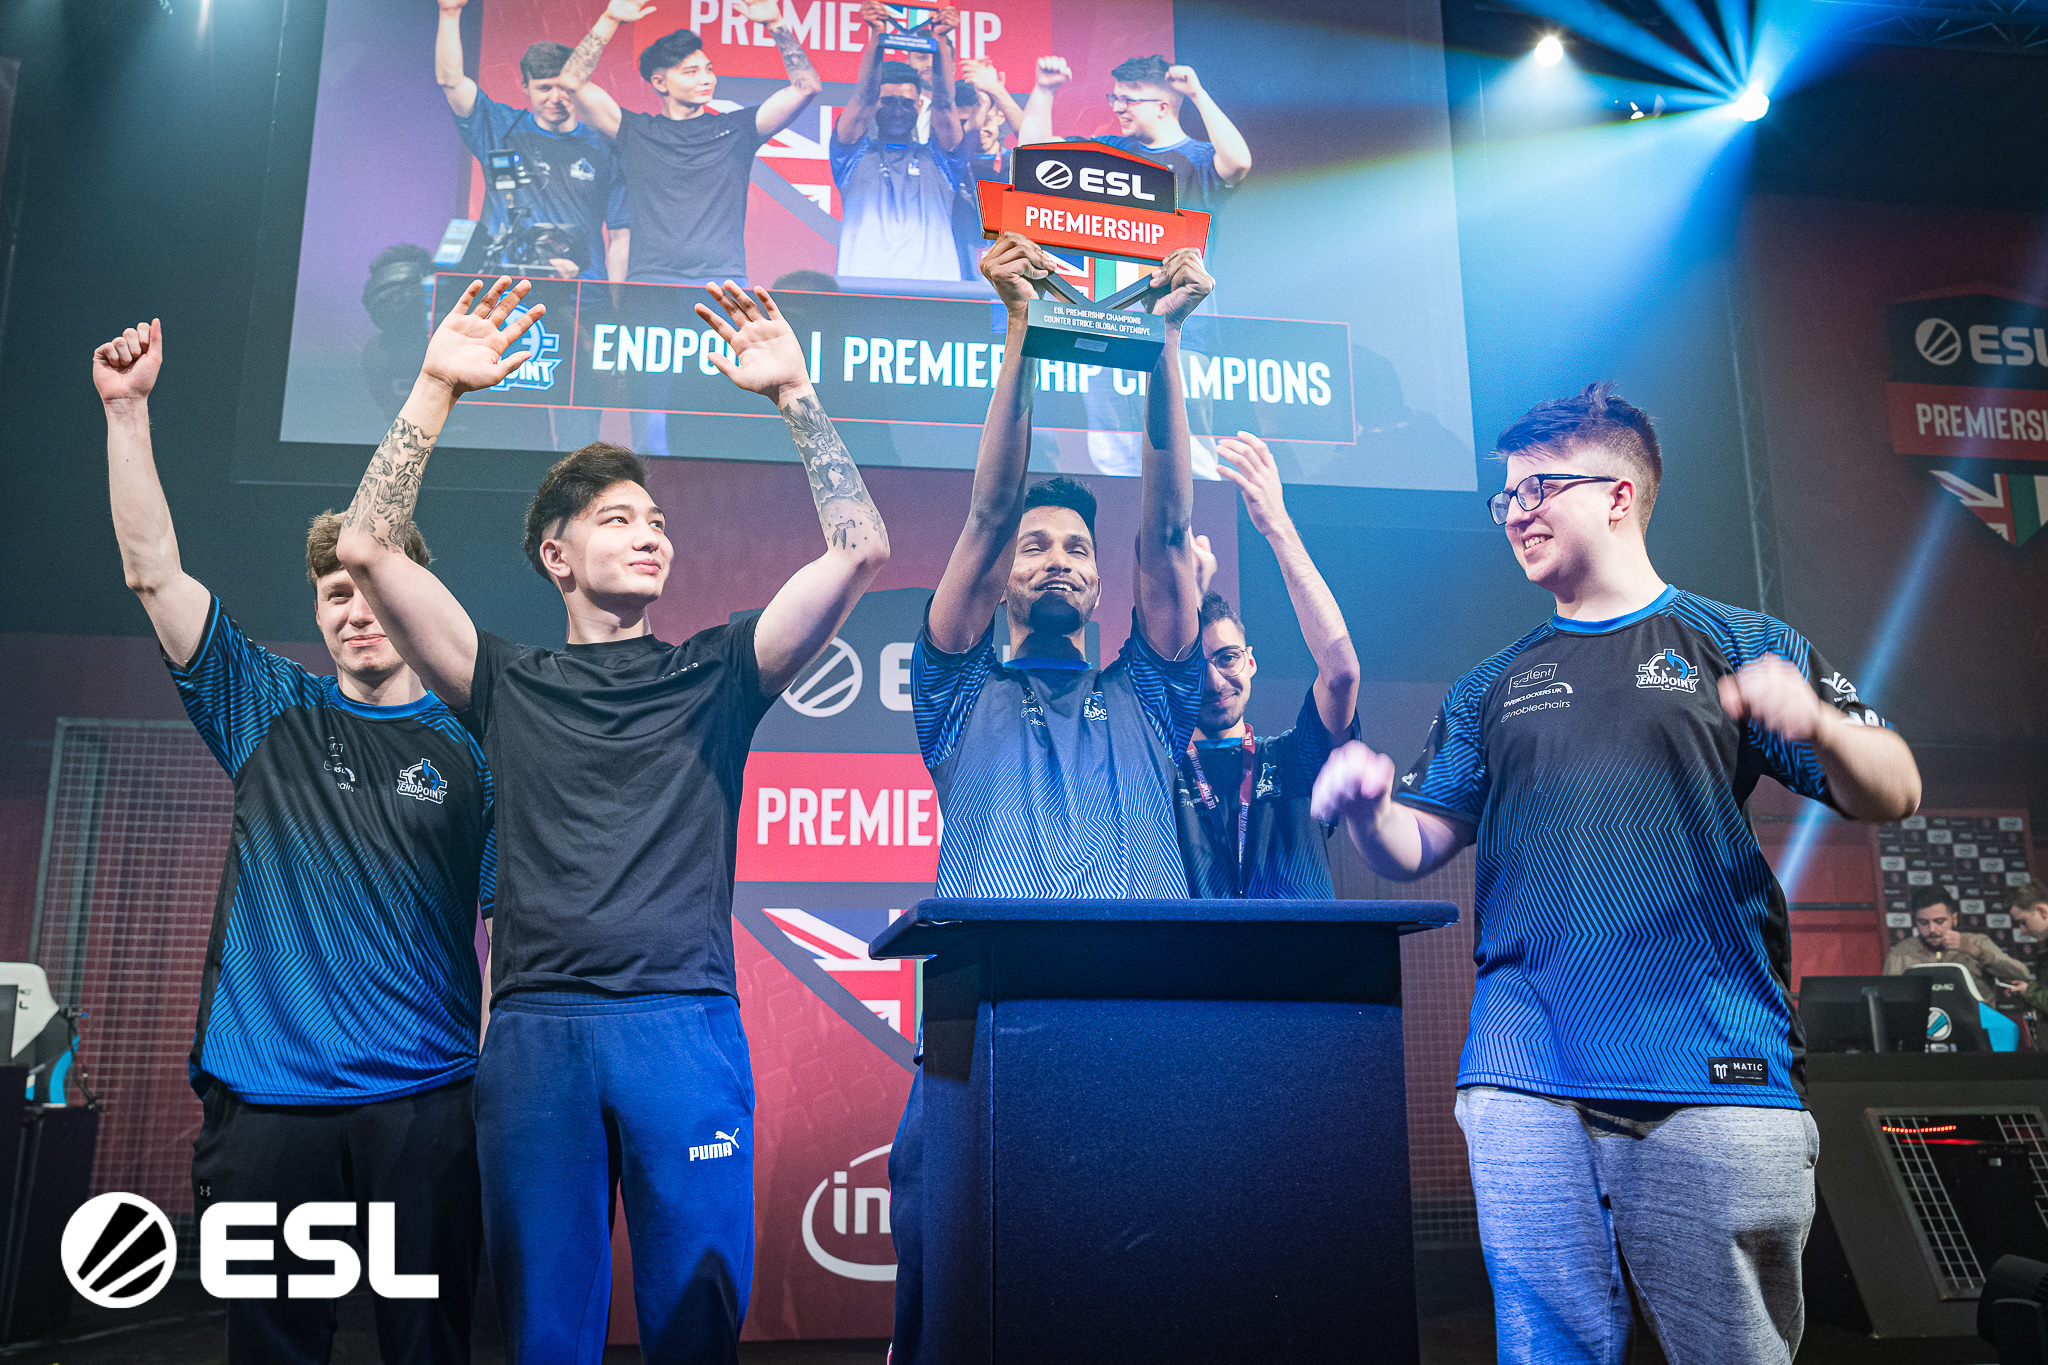 THE ESL PREMIERSHIP RETURNS FOR AUTUMN SEASON  WITH RENEWED ENDEMIC SUPPORT FROM RAZER